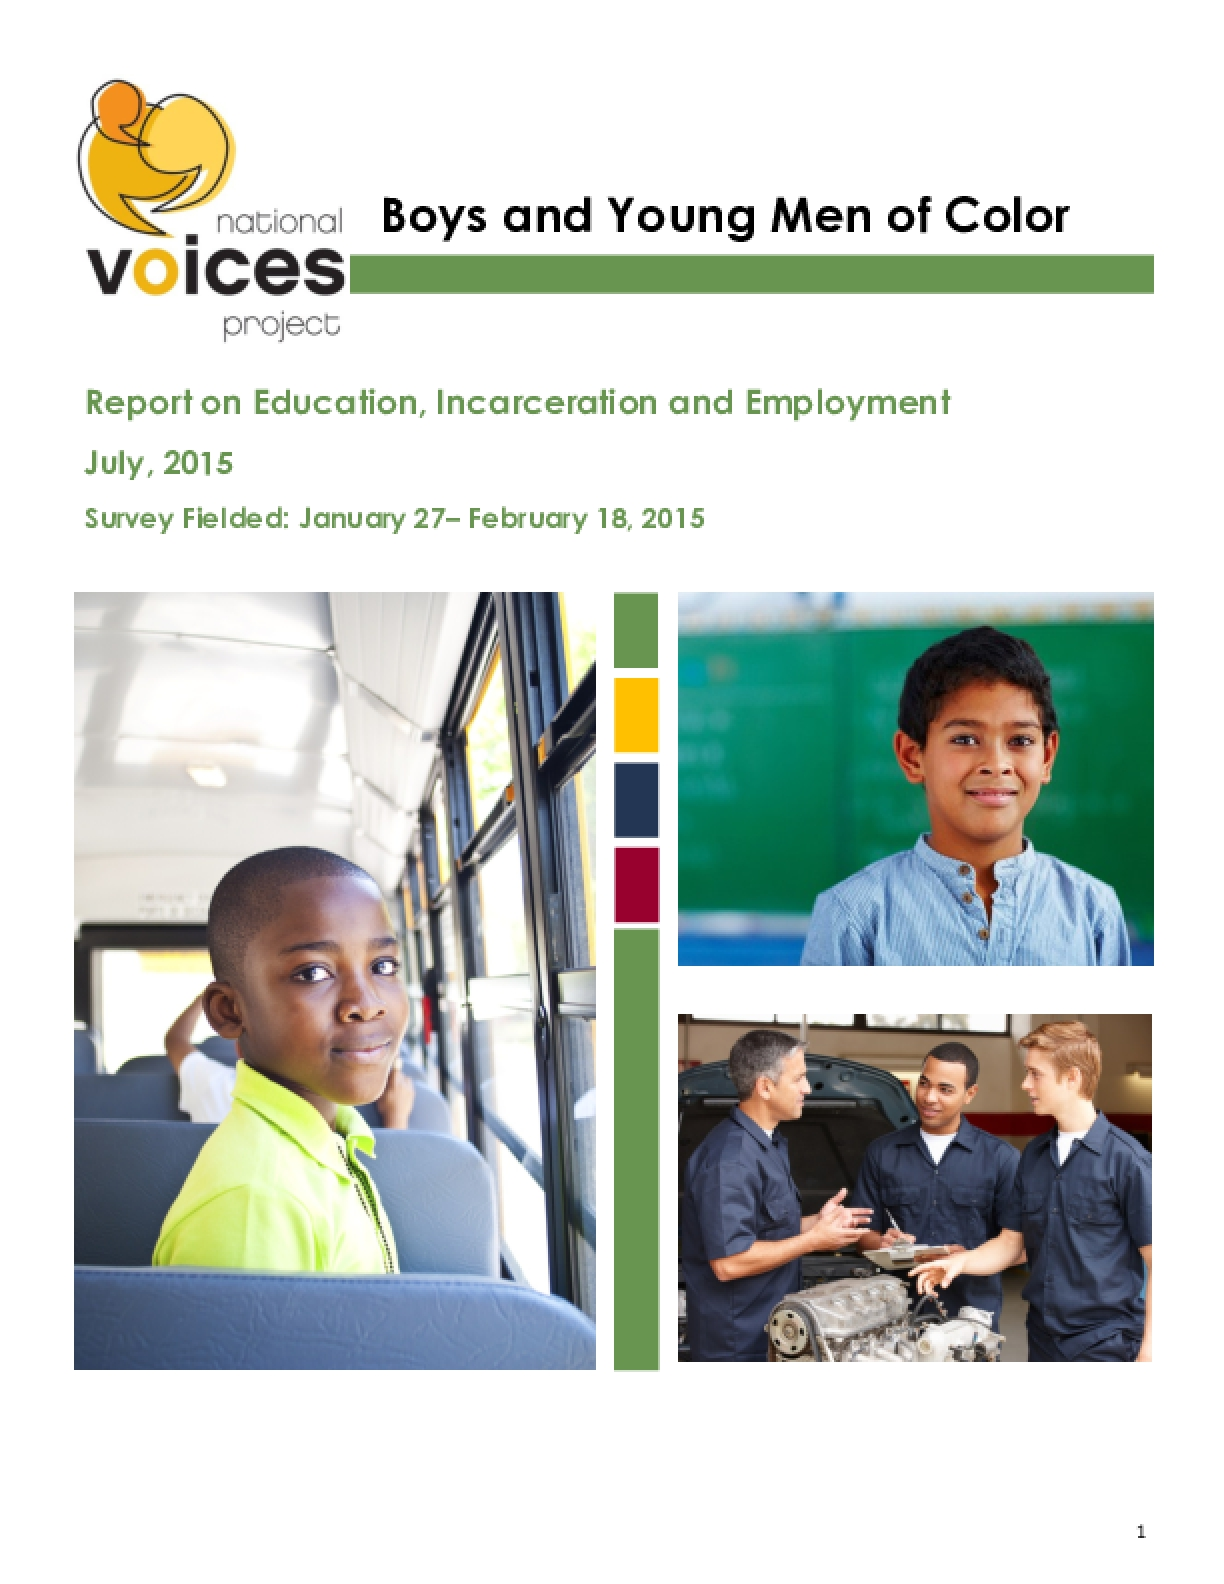 Boys and Young Men of Color: Report on Education, Incarceration and Employment